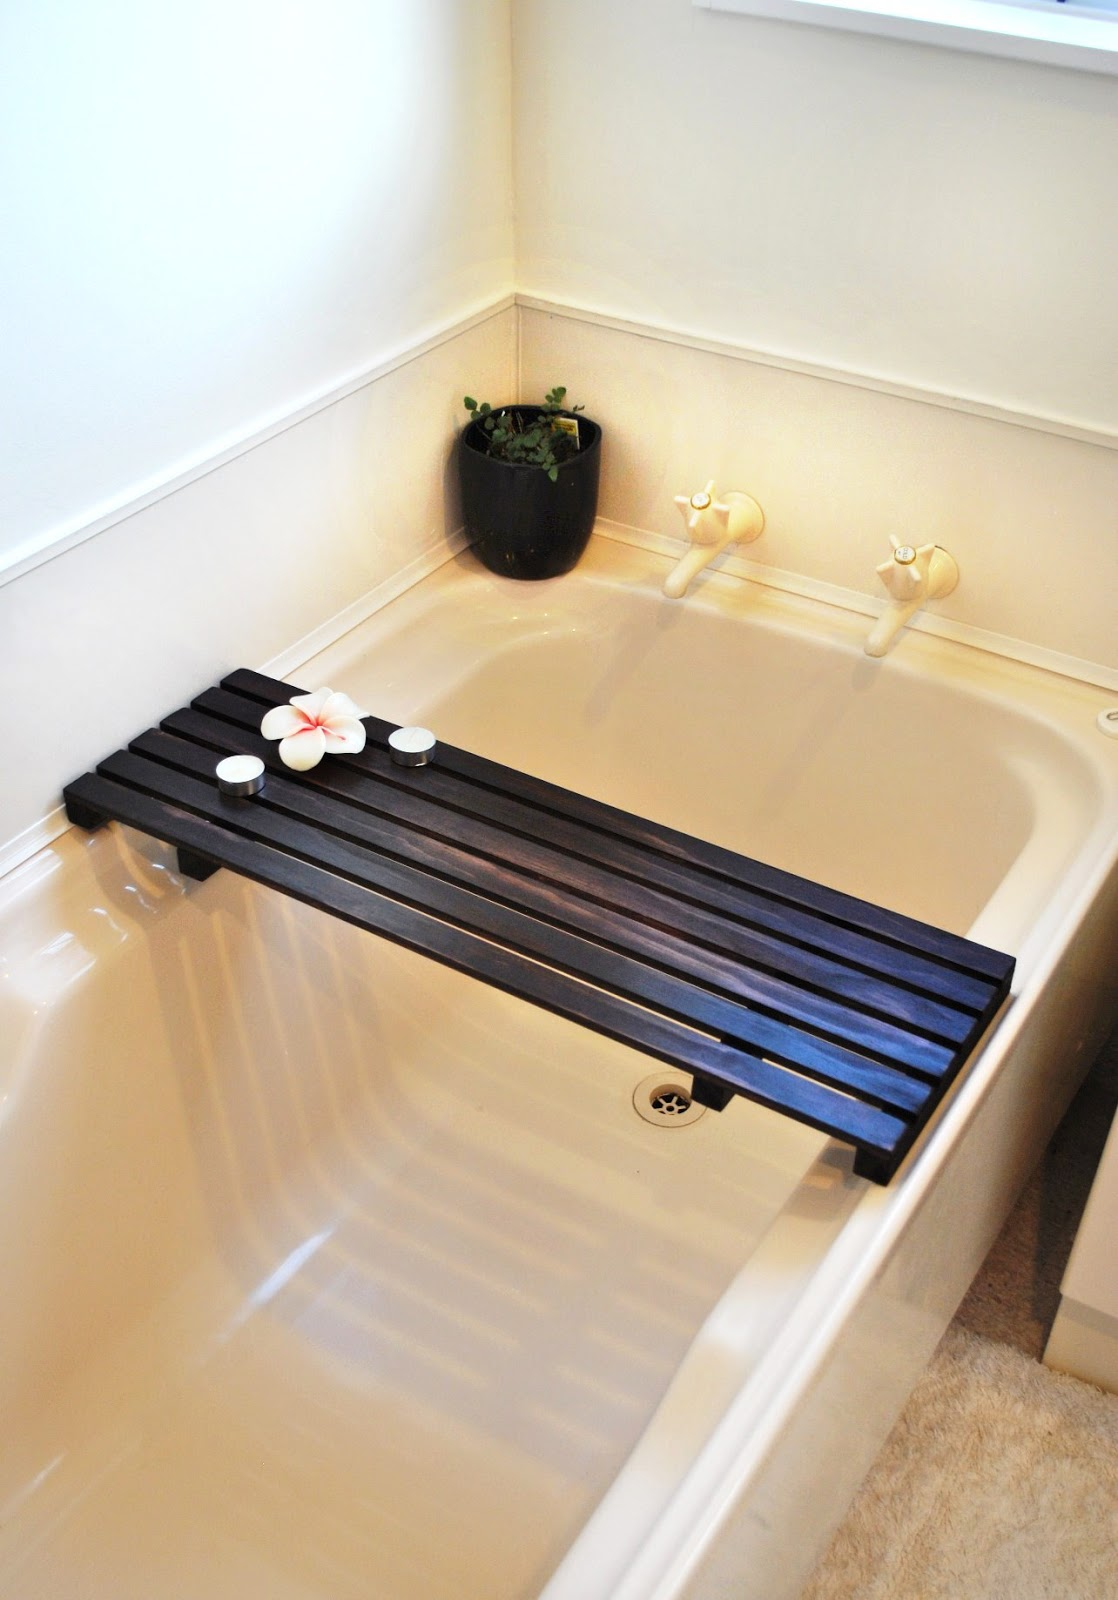 Diy Kiwi How To Build A Timber Bath Caddy